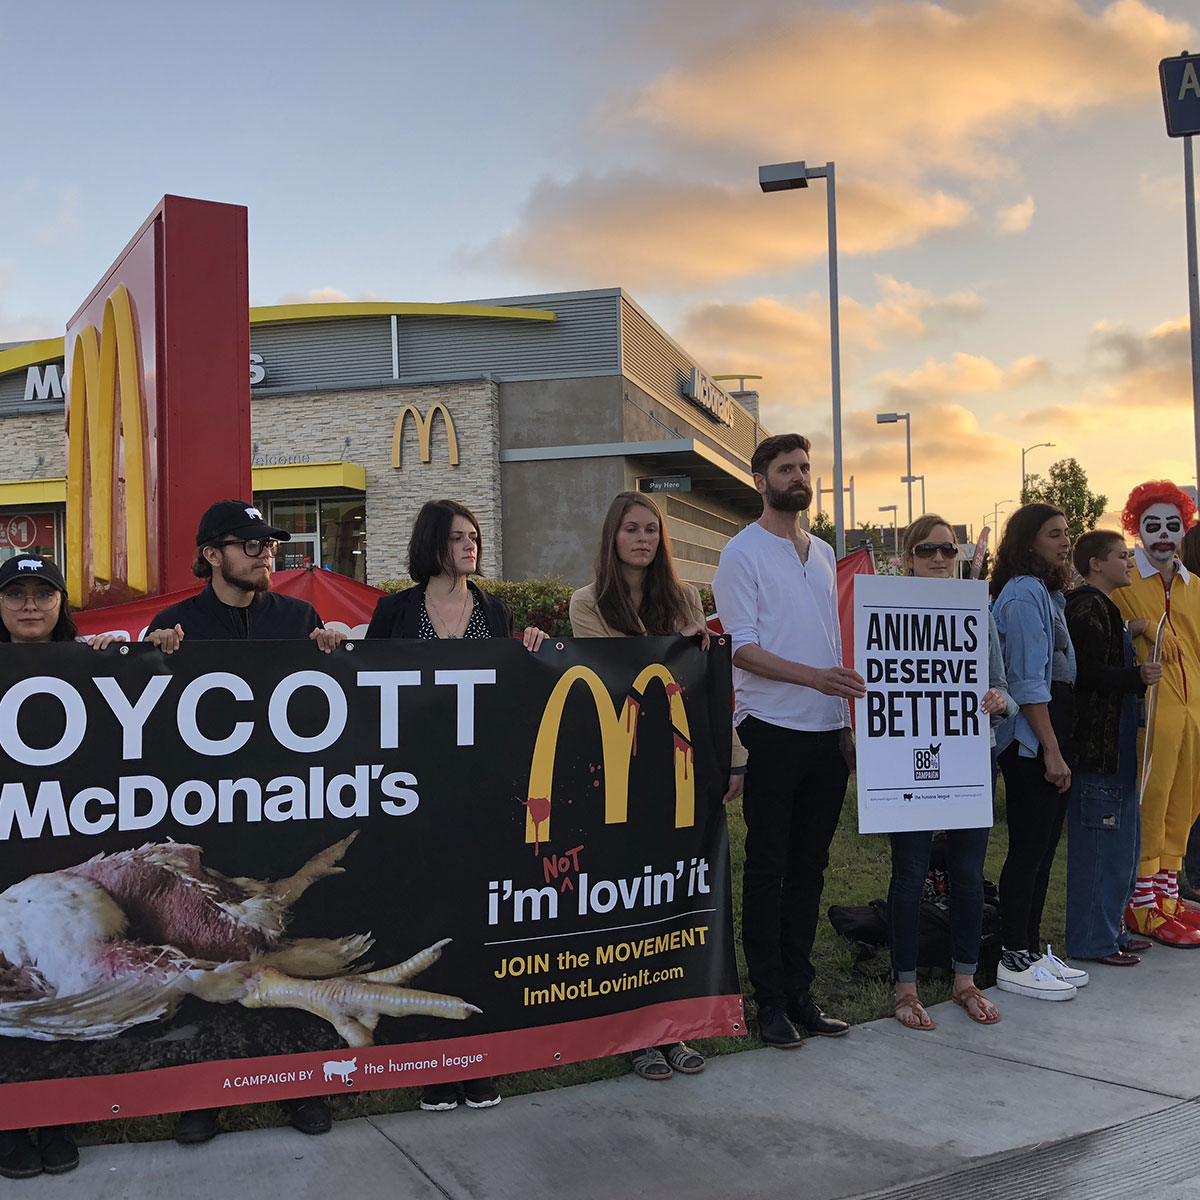 $250 funds a protest outside the headquarters of a company that abuses animals